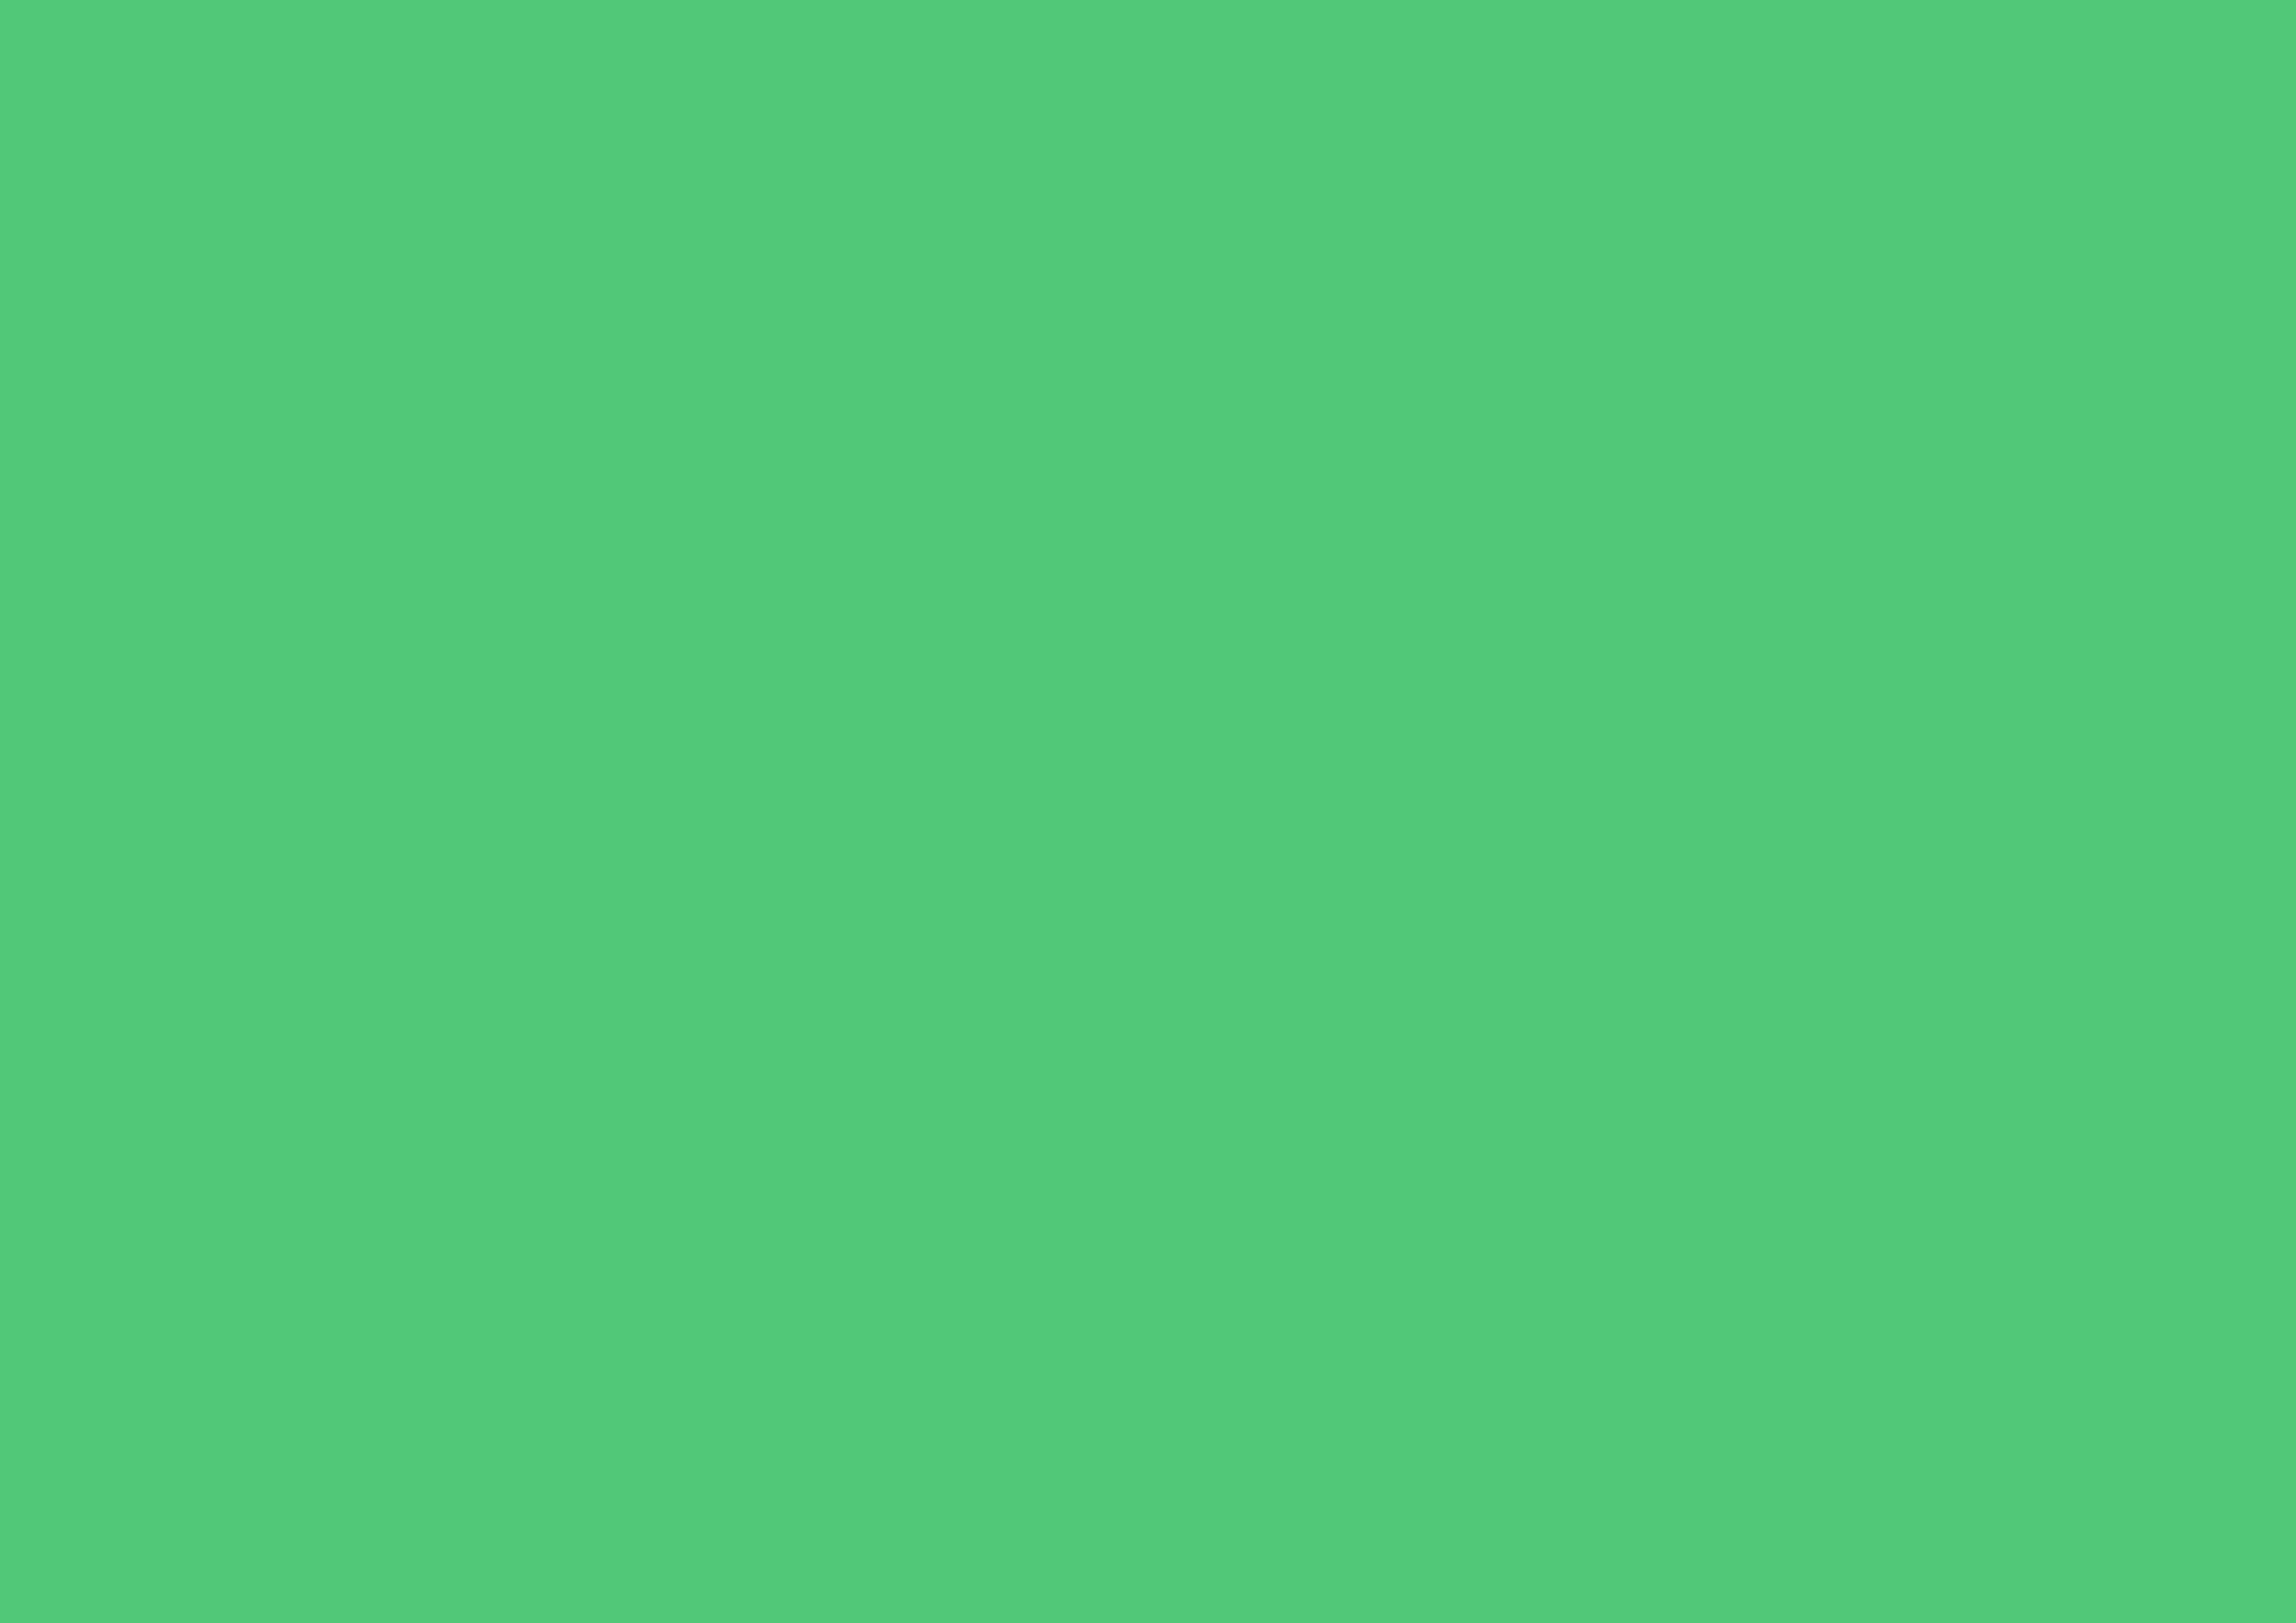 3508x2480 Emerald Solid Color Background